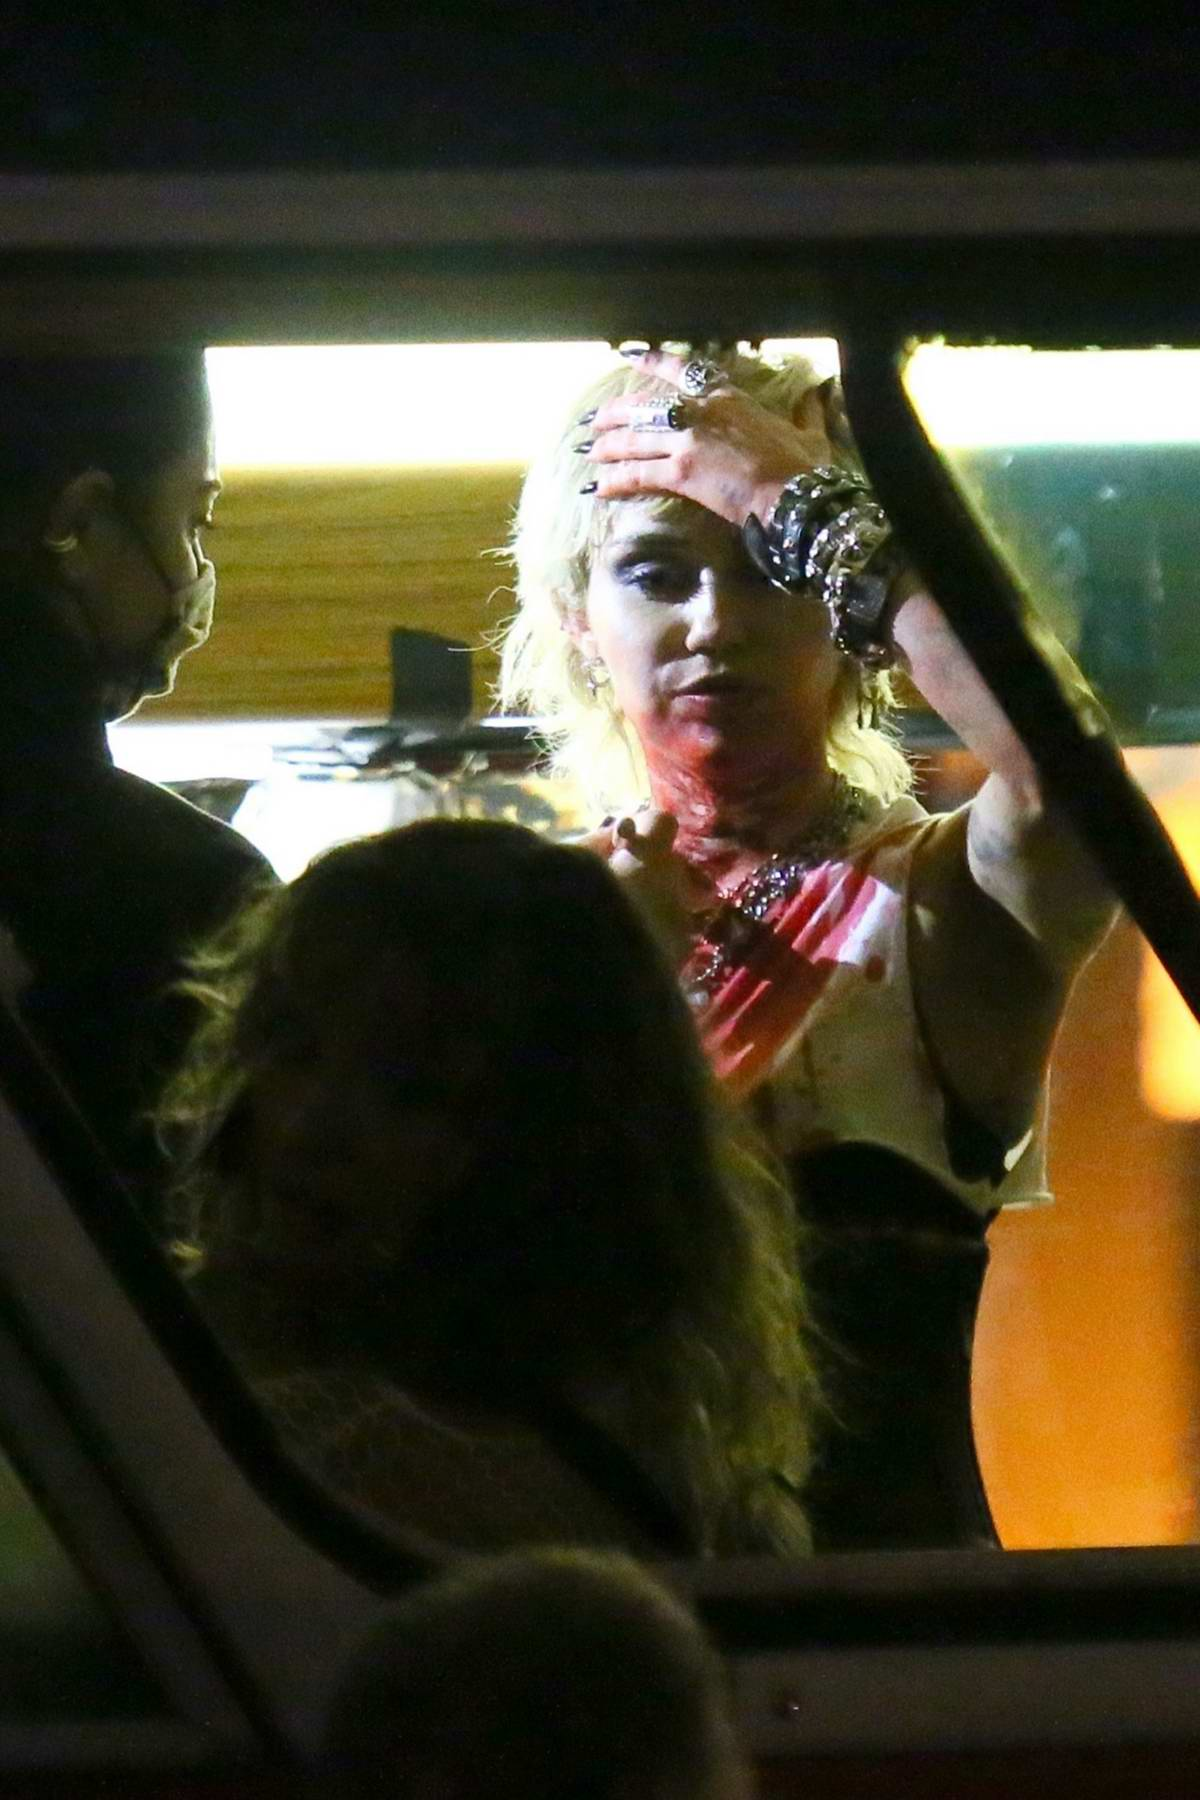 Miley Cyrus seen covered in fake blood while filming her new video in Brooklyn, New York